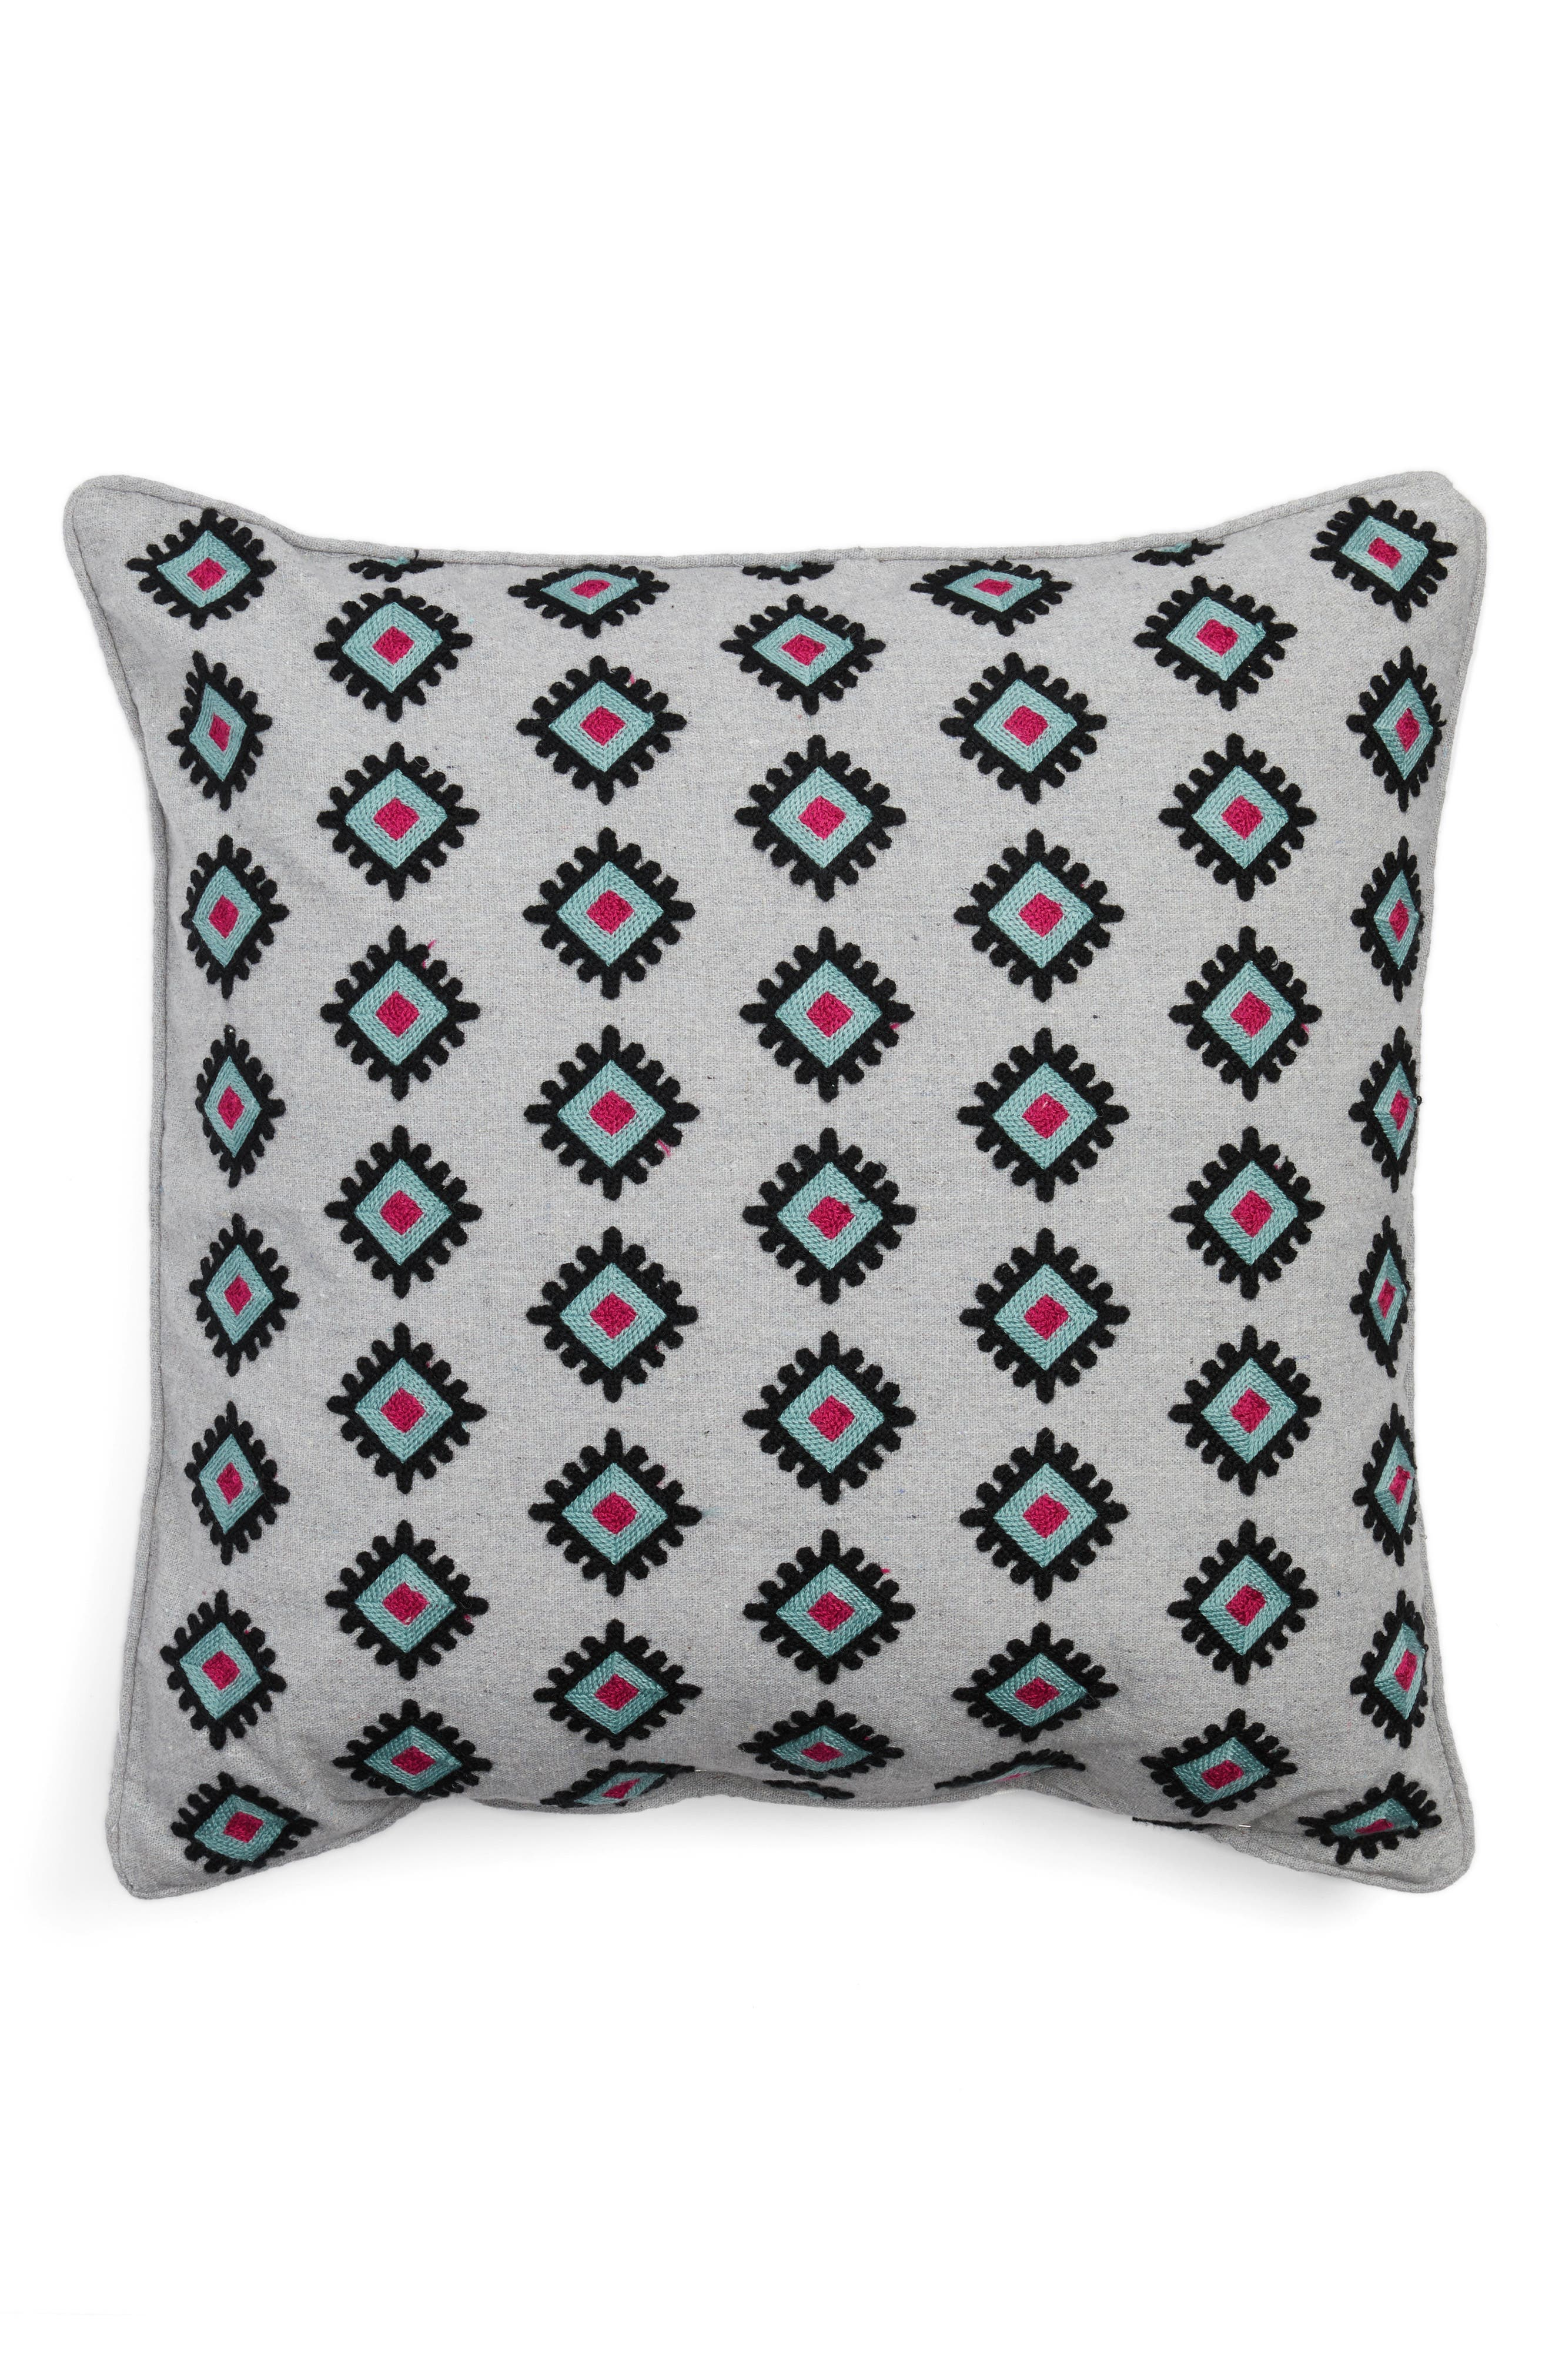 Alternate Image 1 Selected - Levtex Nala Towel Stitch Accent Pillow